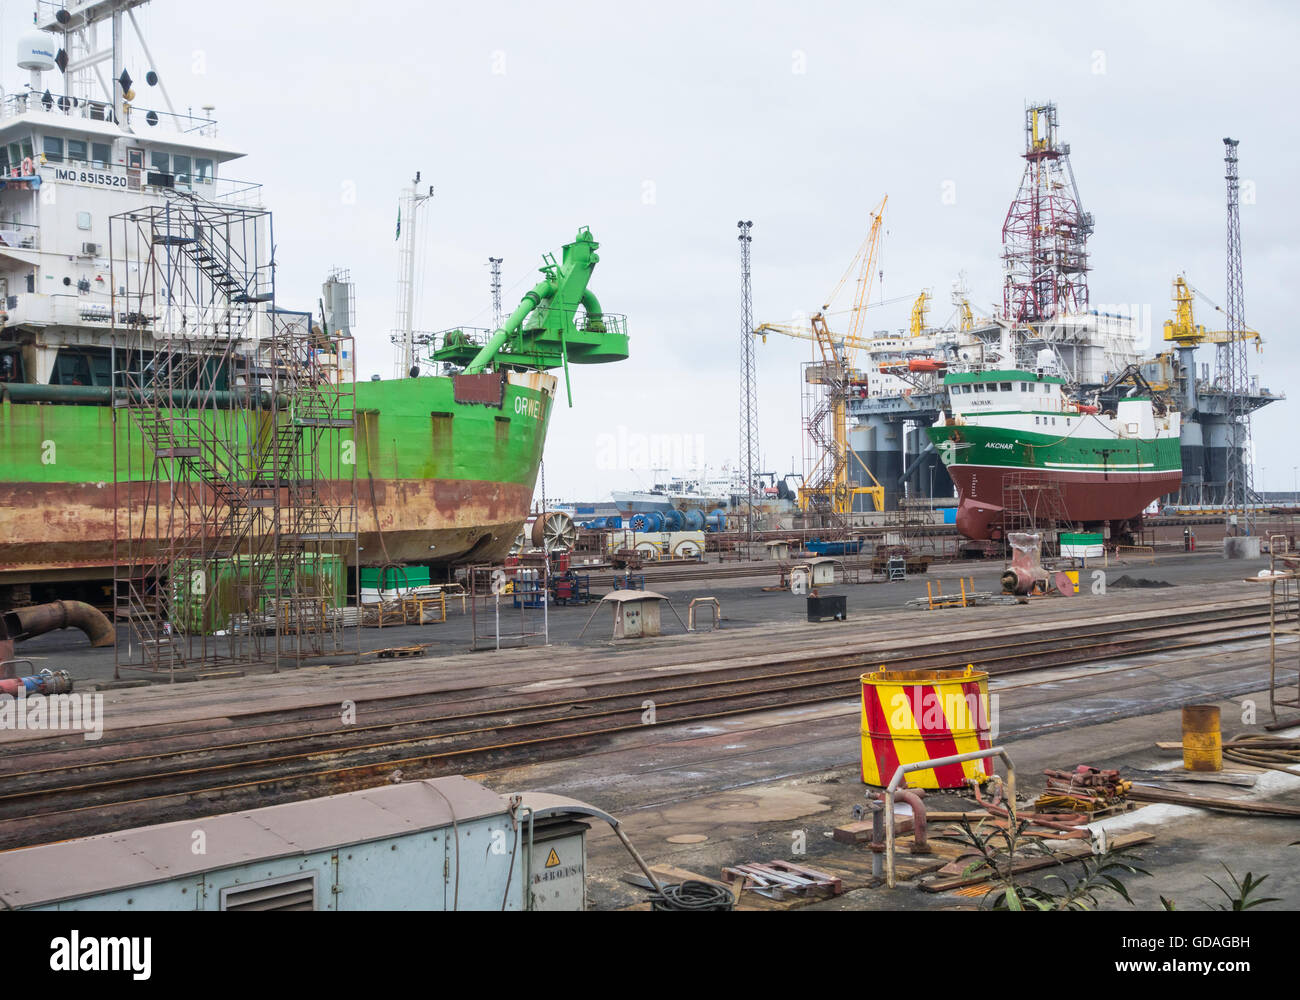 Ships and oil rig in repair yard in Las Palmas port on Gran Canaria, Canary Islands, Spain - Stock Image